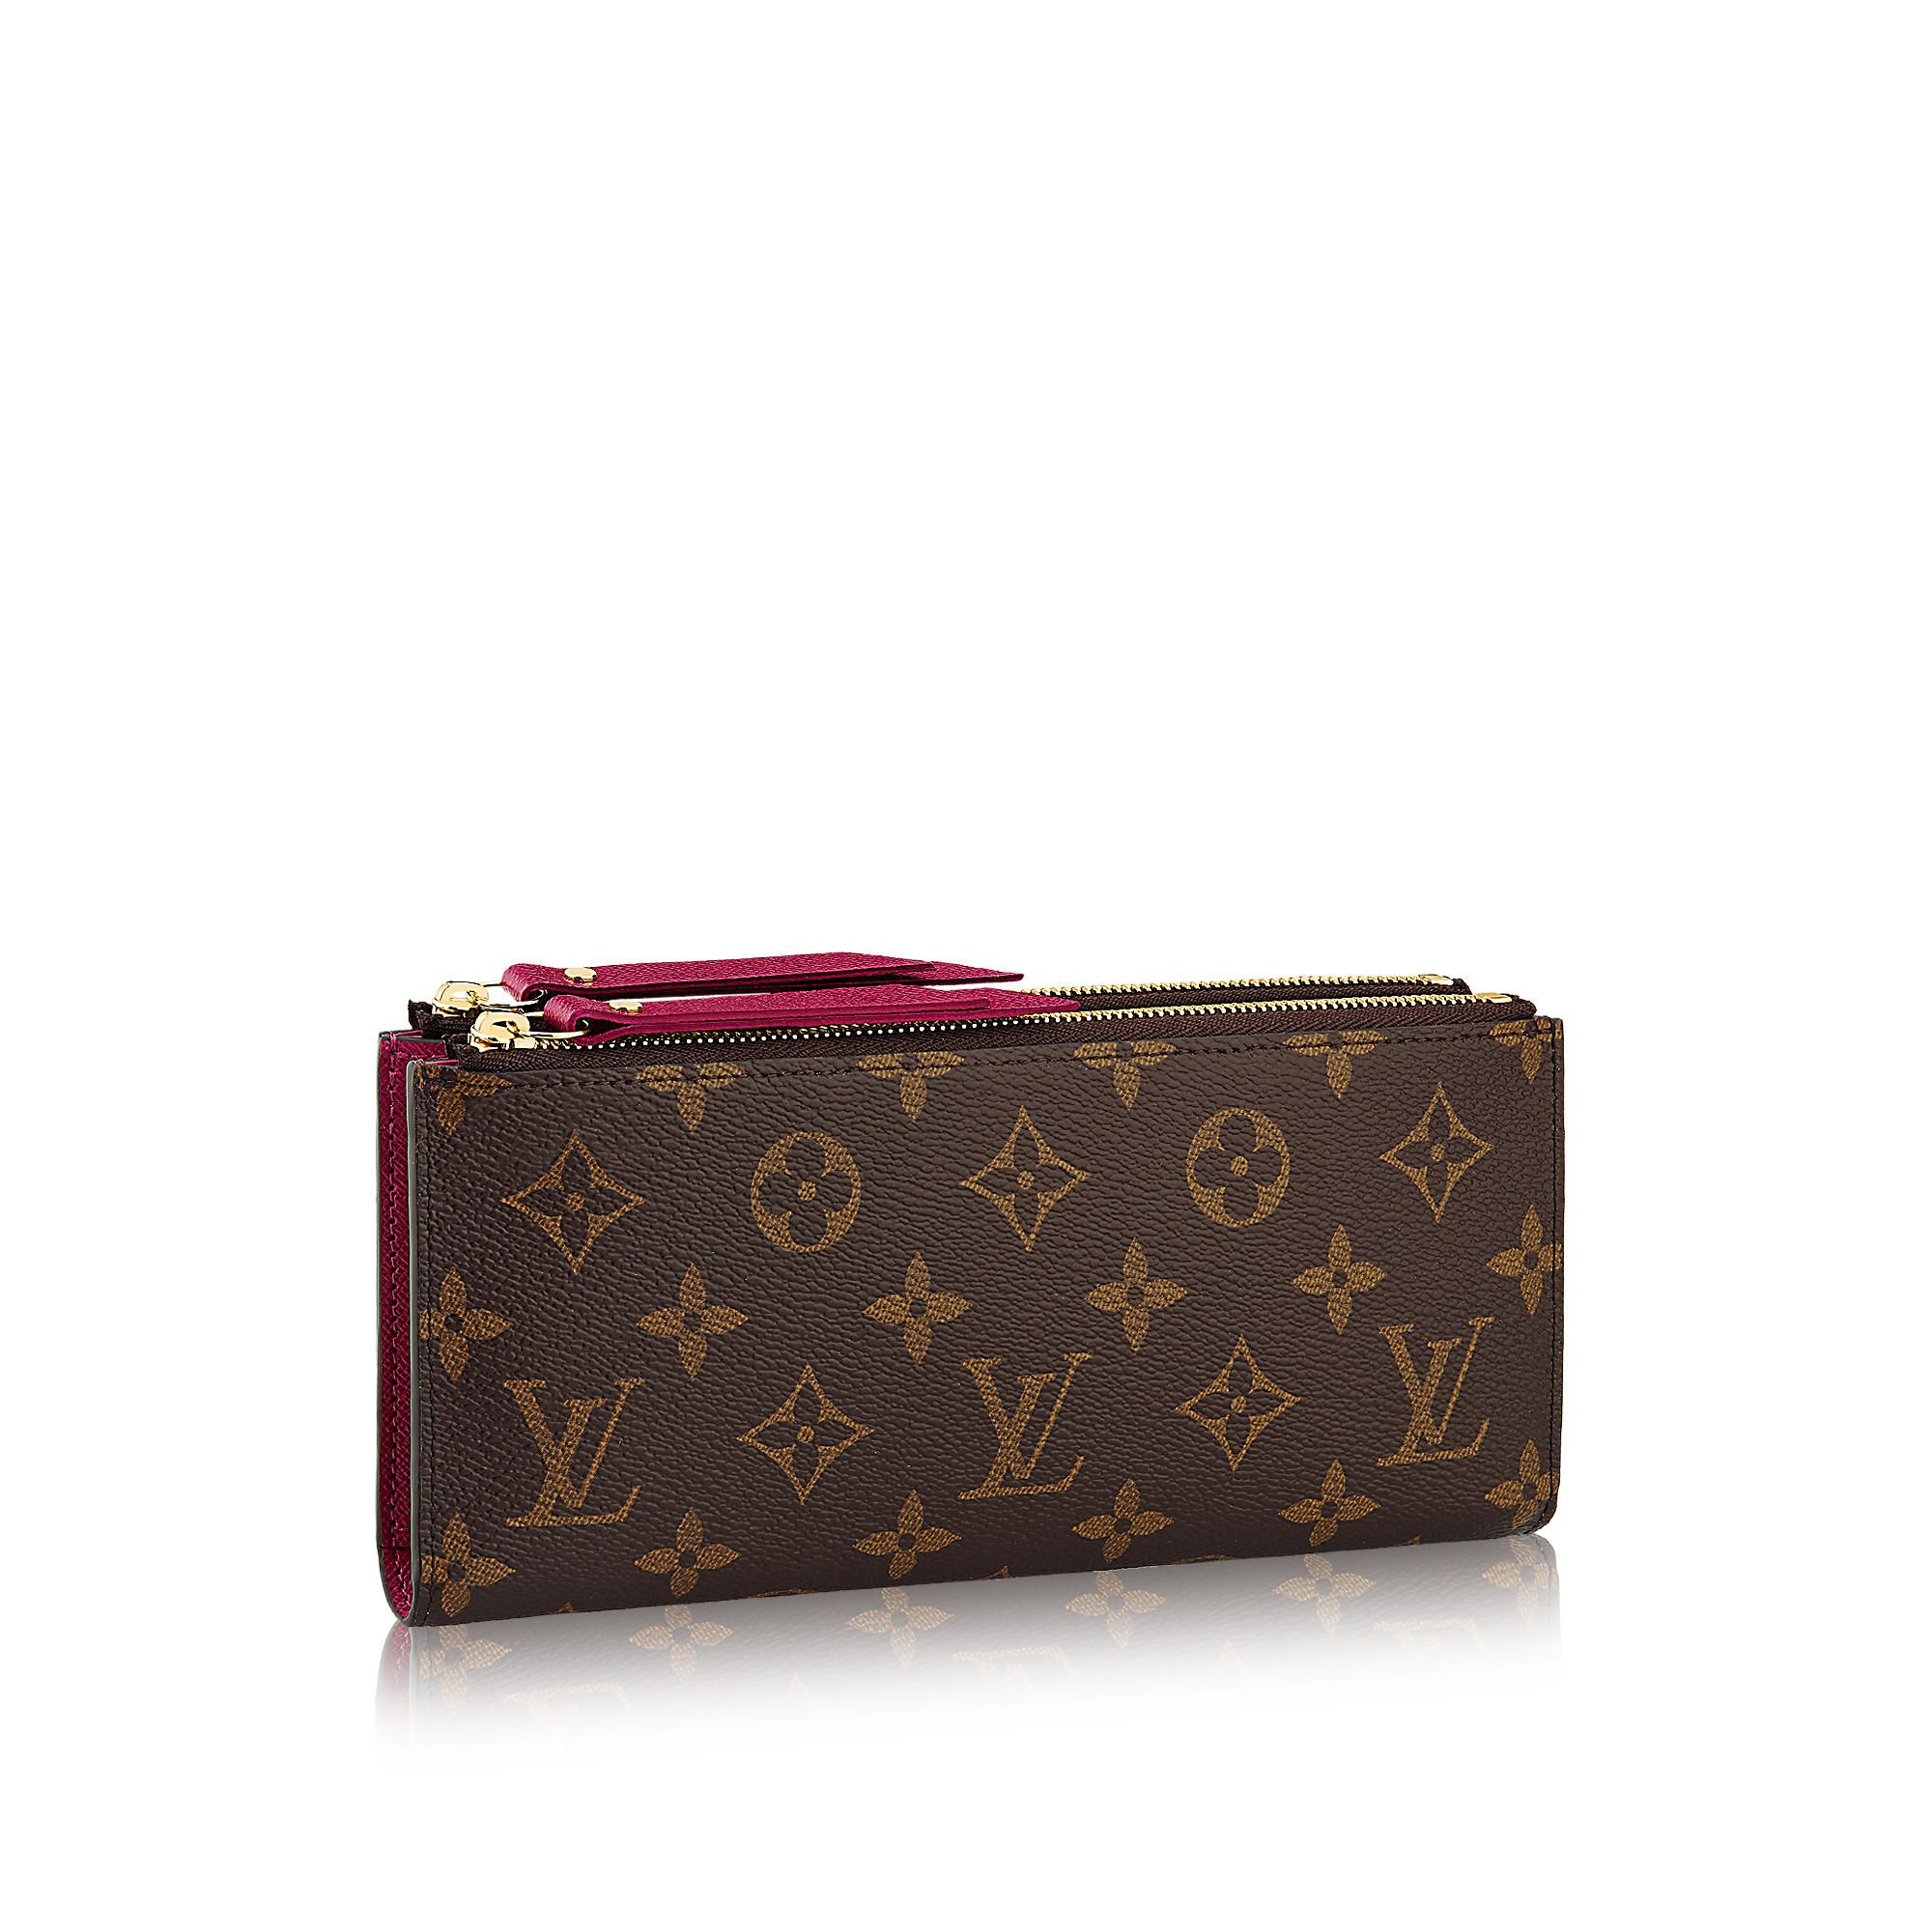 524a7538f0bf6 Portefeuille Adele via Louis Vuitton